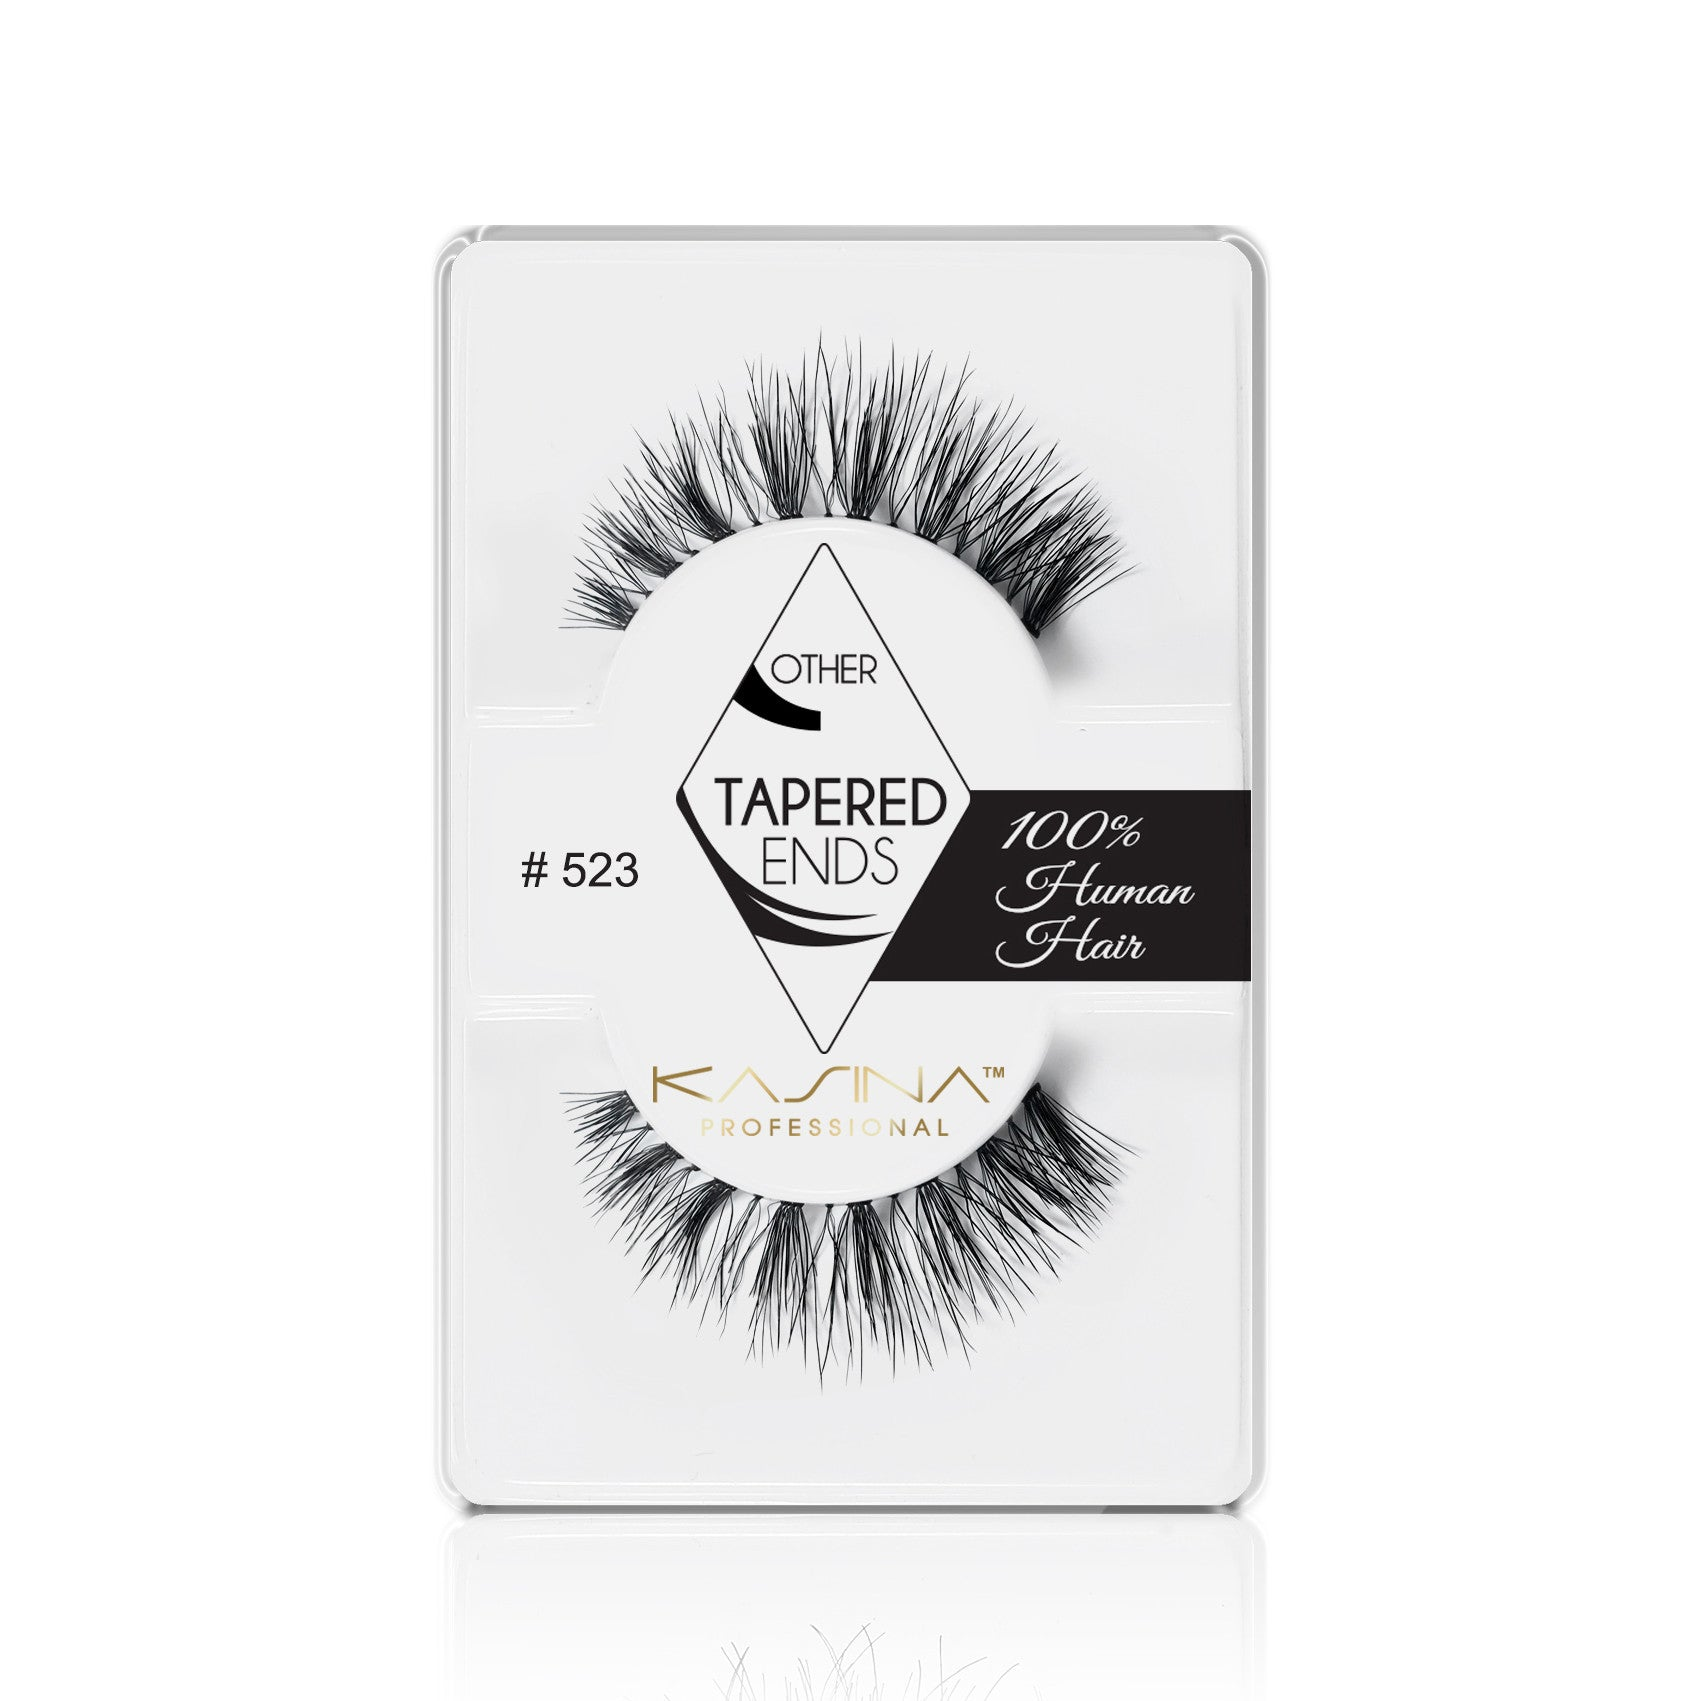 False Lashes - Professional Tapered ends lashes 523T. SAGA - Recommended by Professional Makeup Artists.